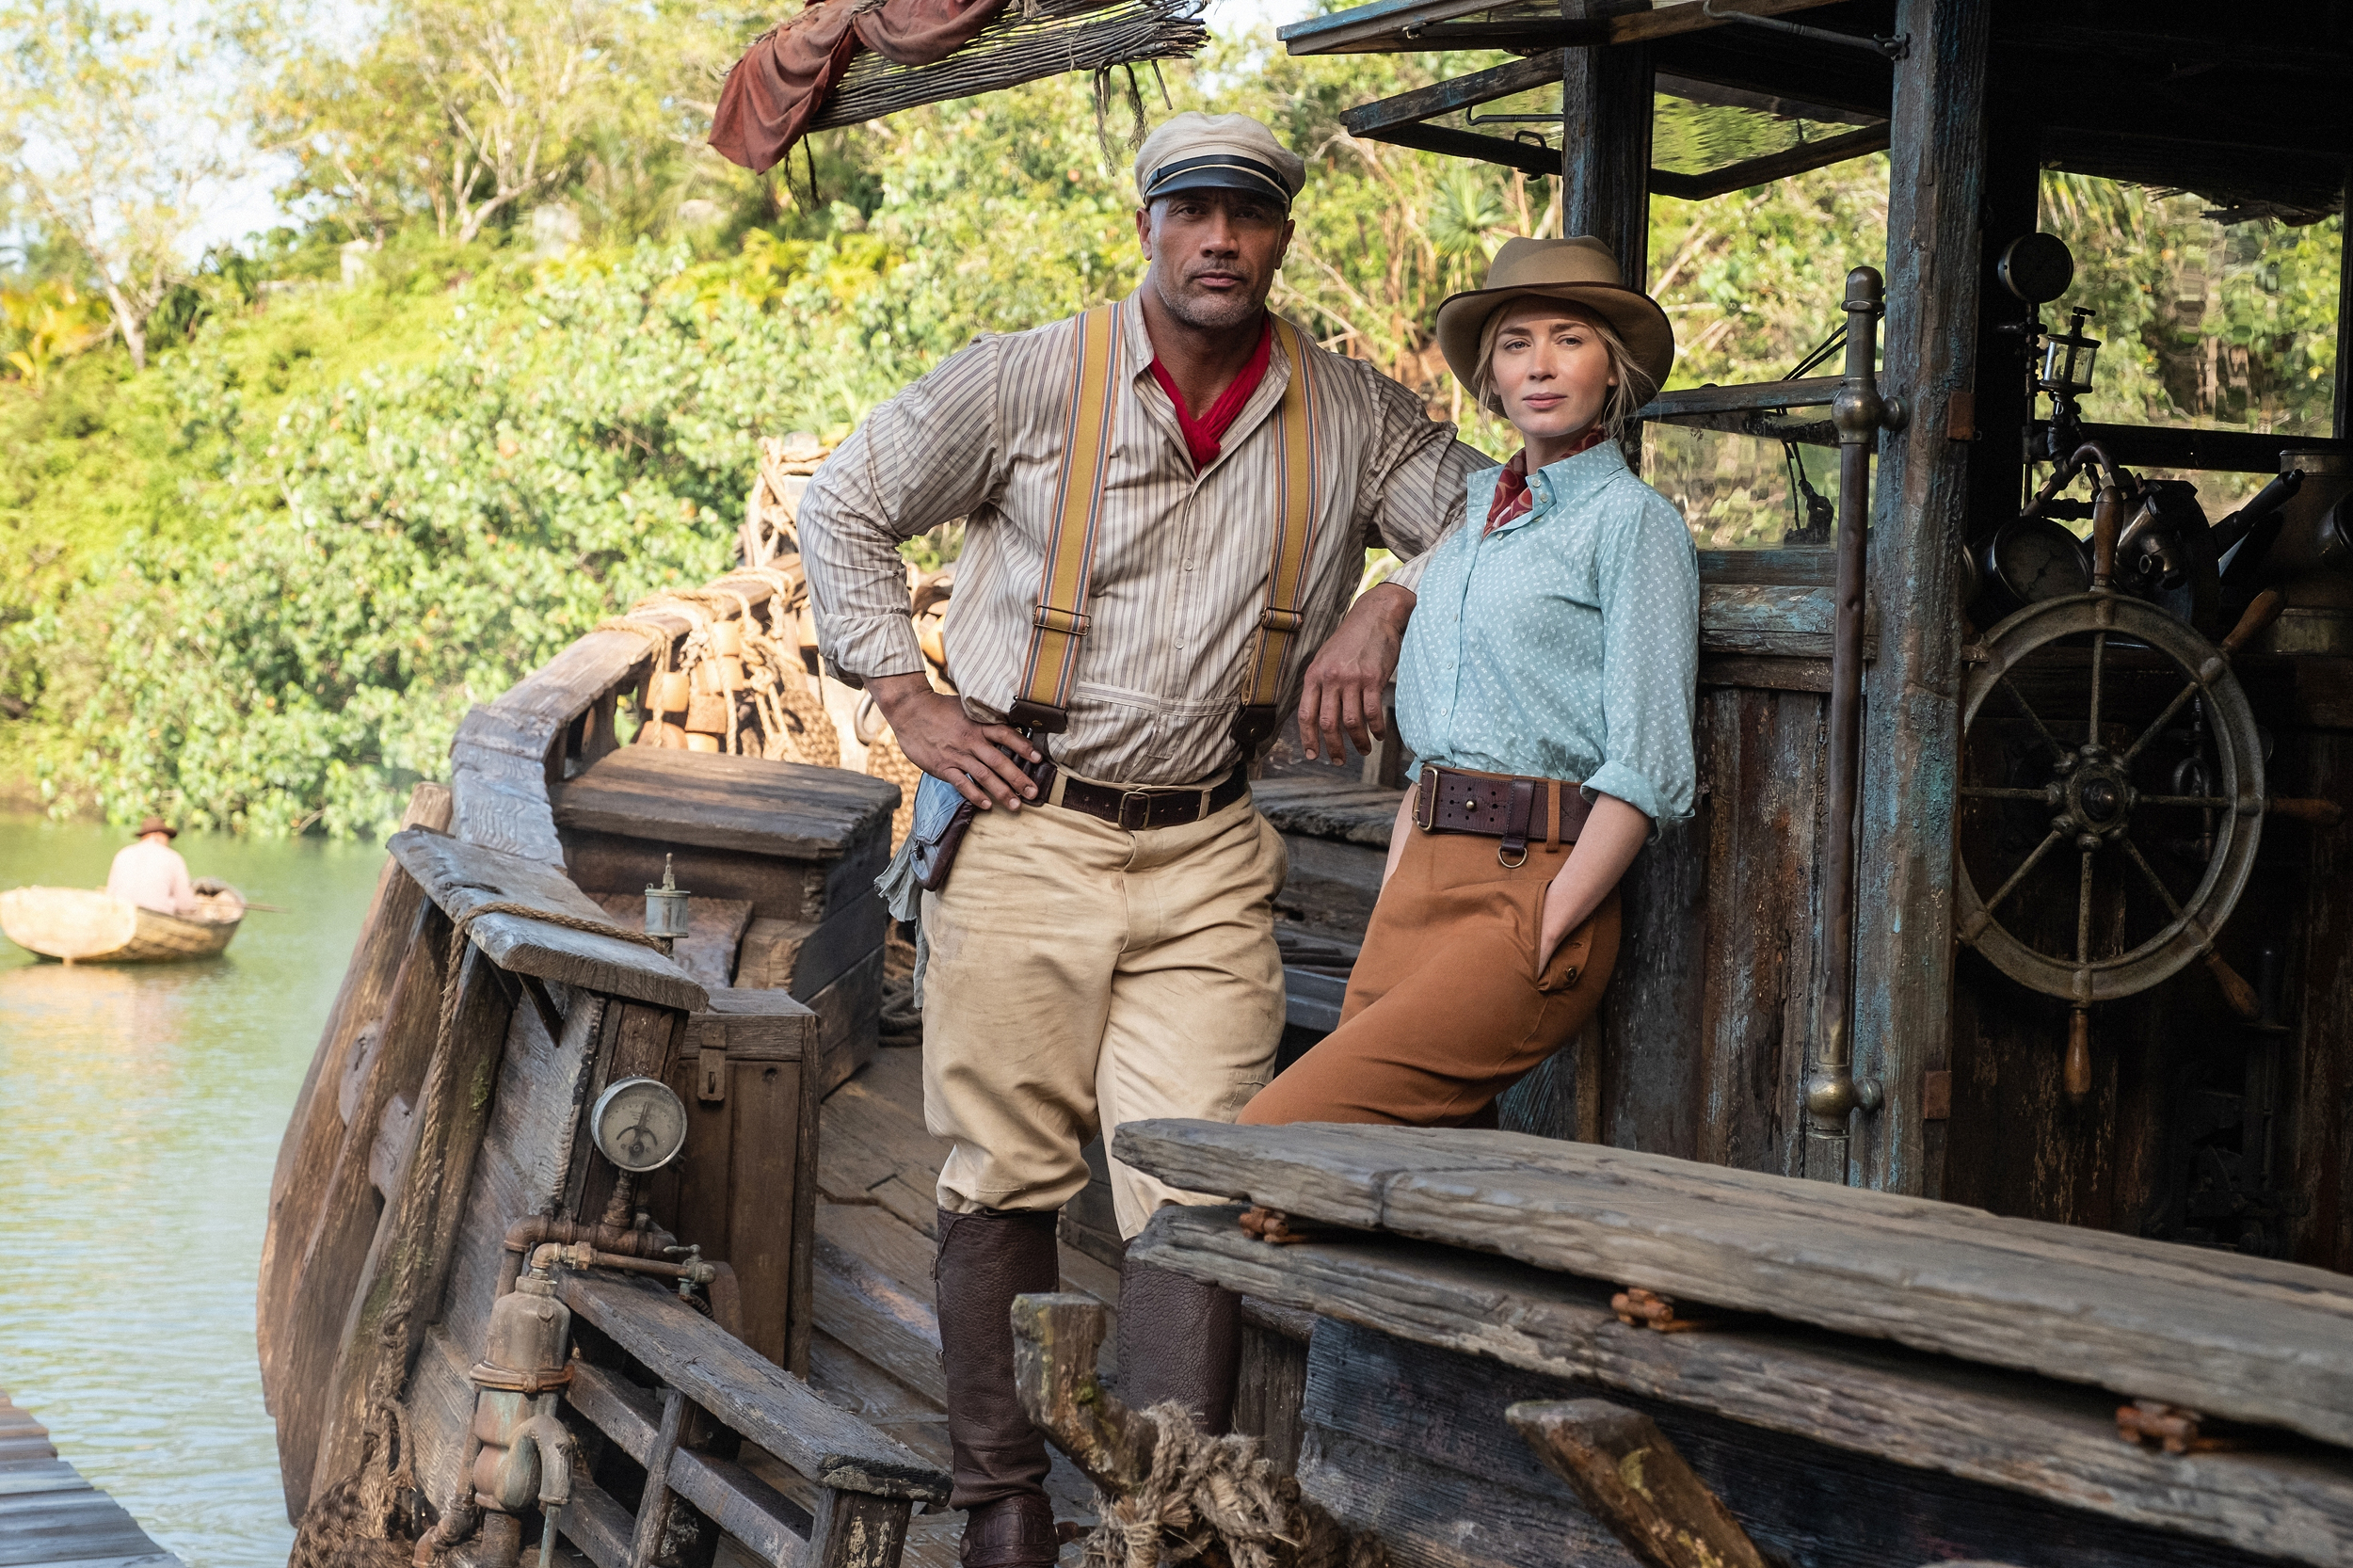 Not even The Rock's limitless charisma can save Disney's 'Jungle Cruise'